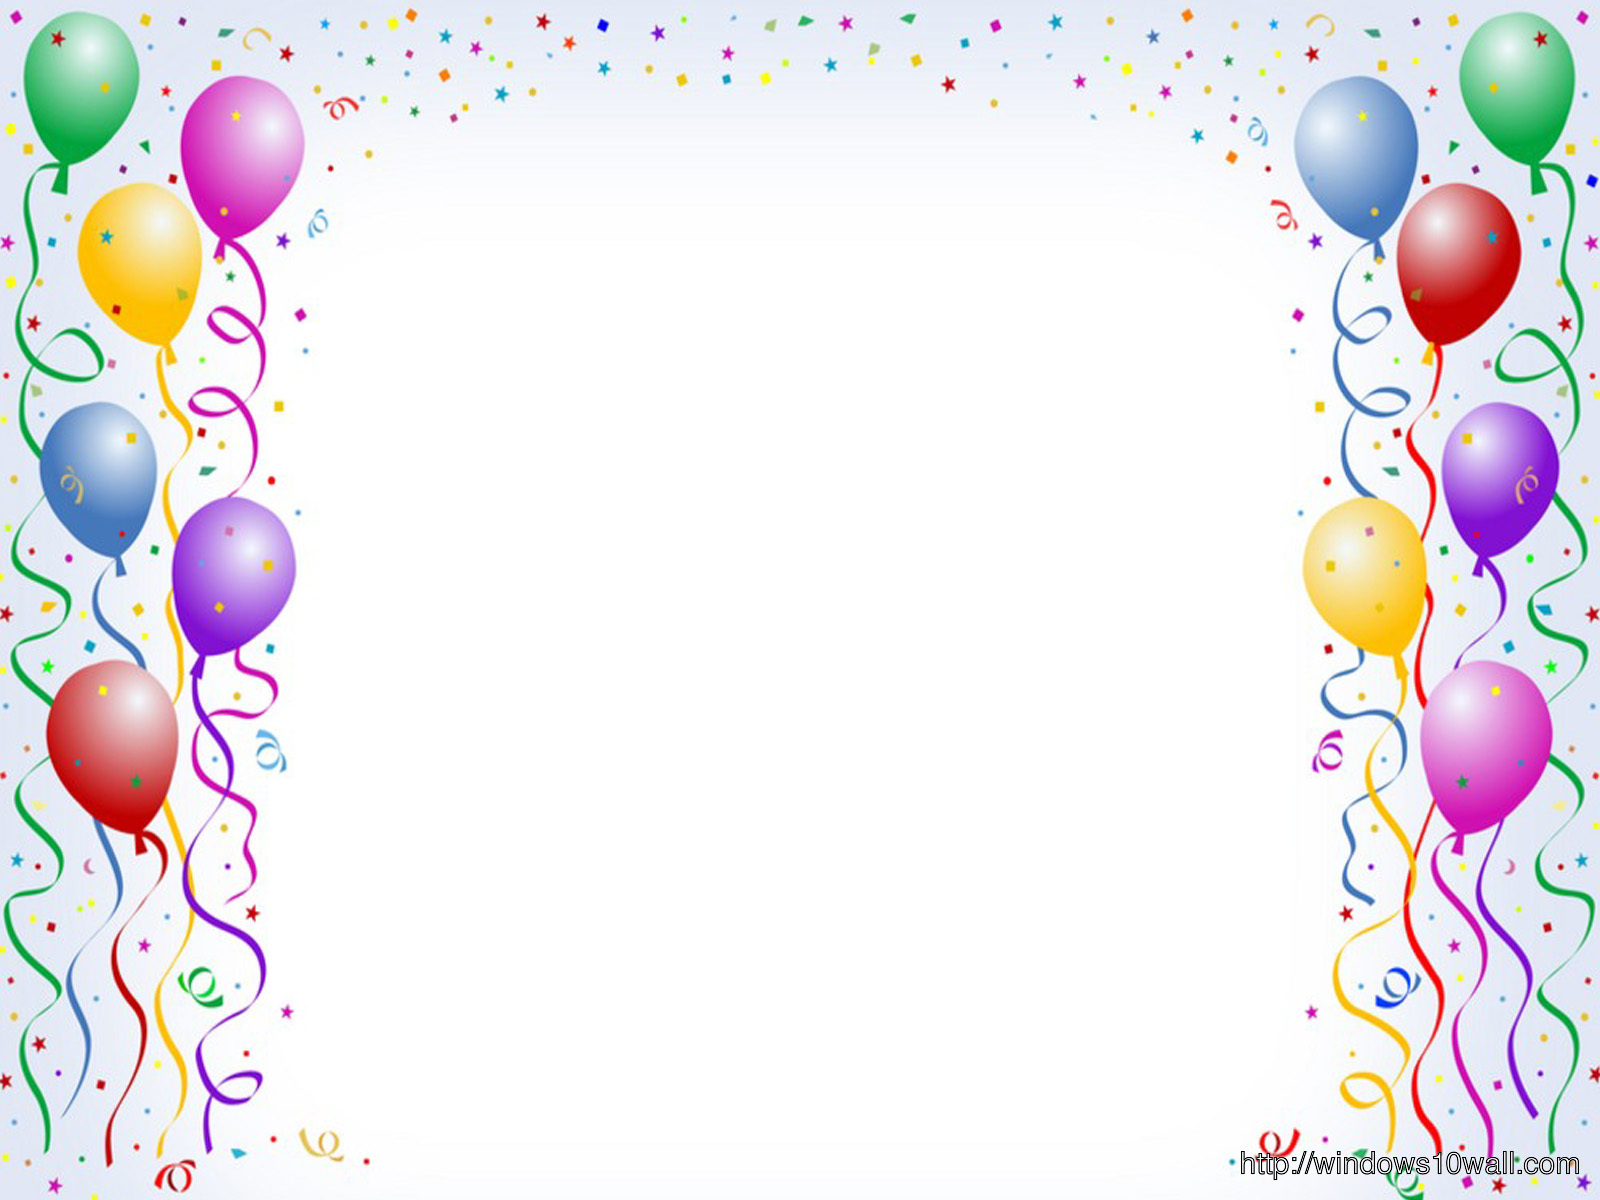 Happy Birthday With Baloons Background Wallpaper